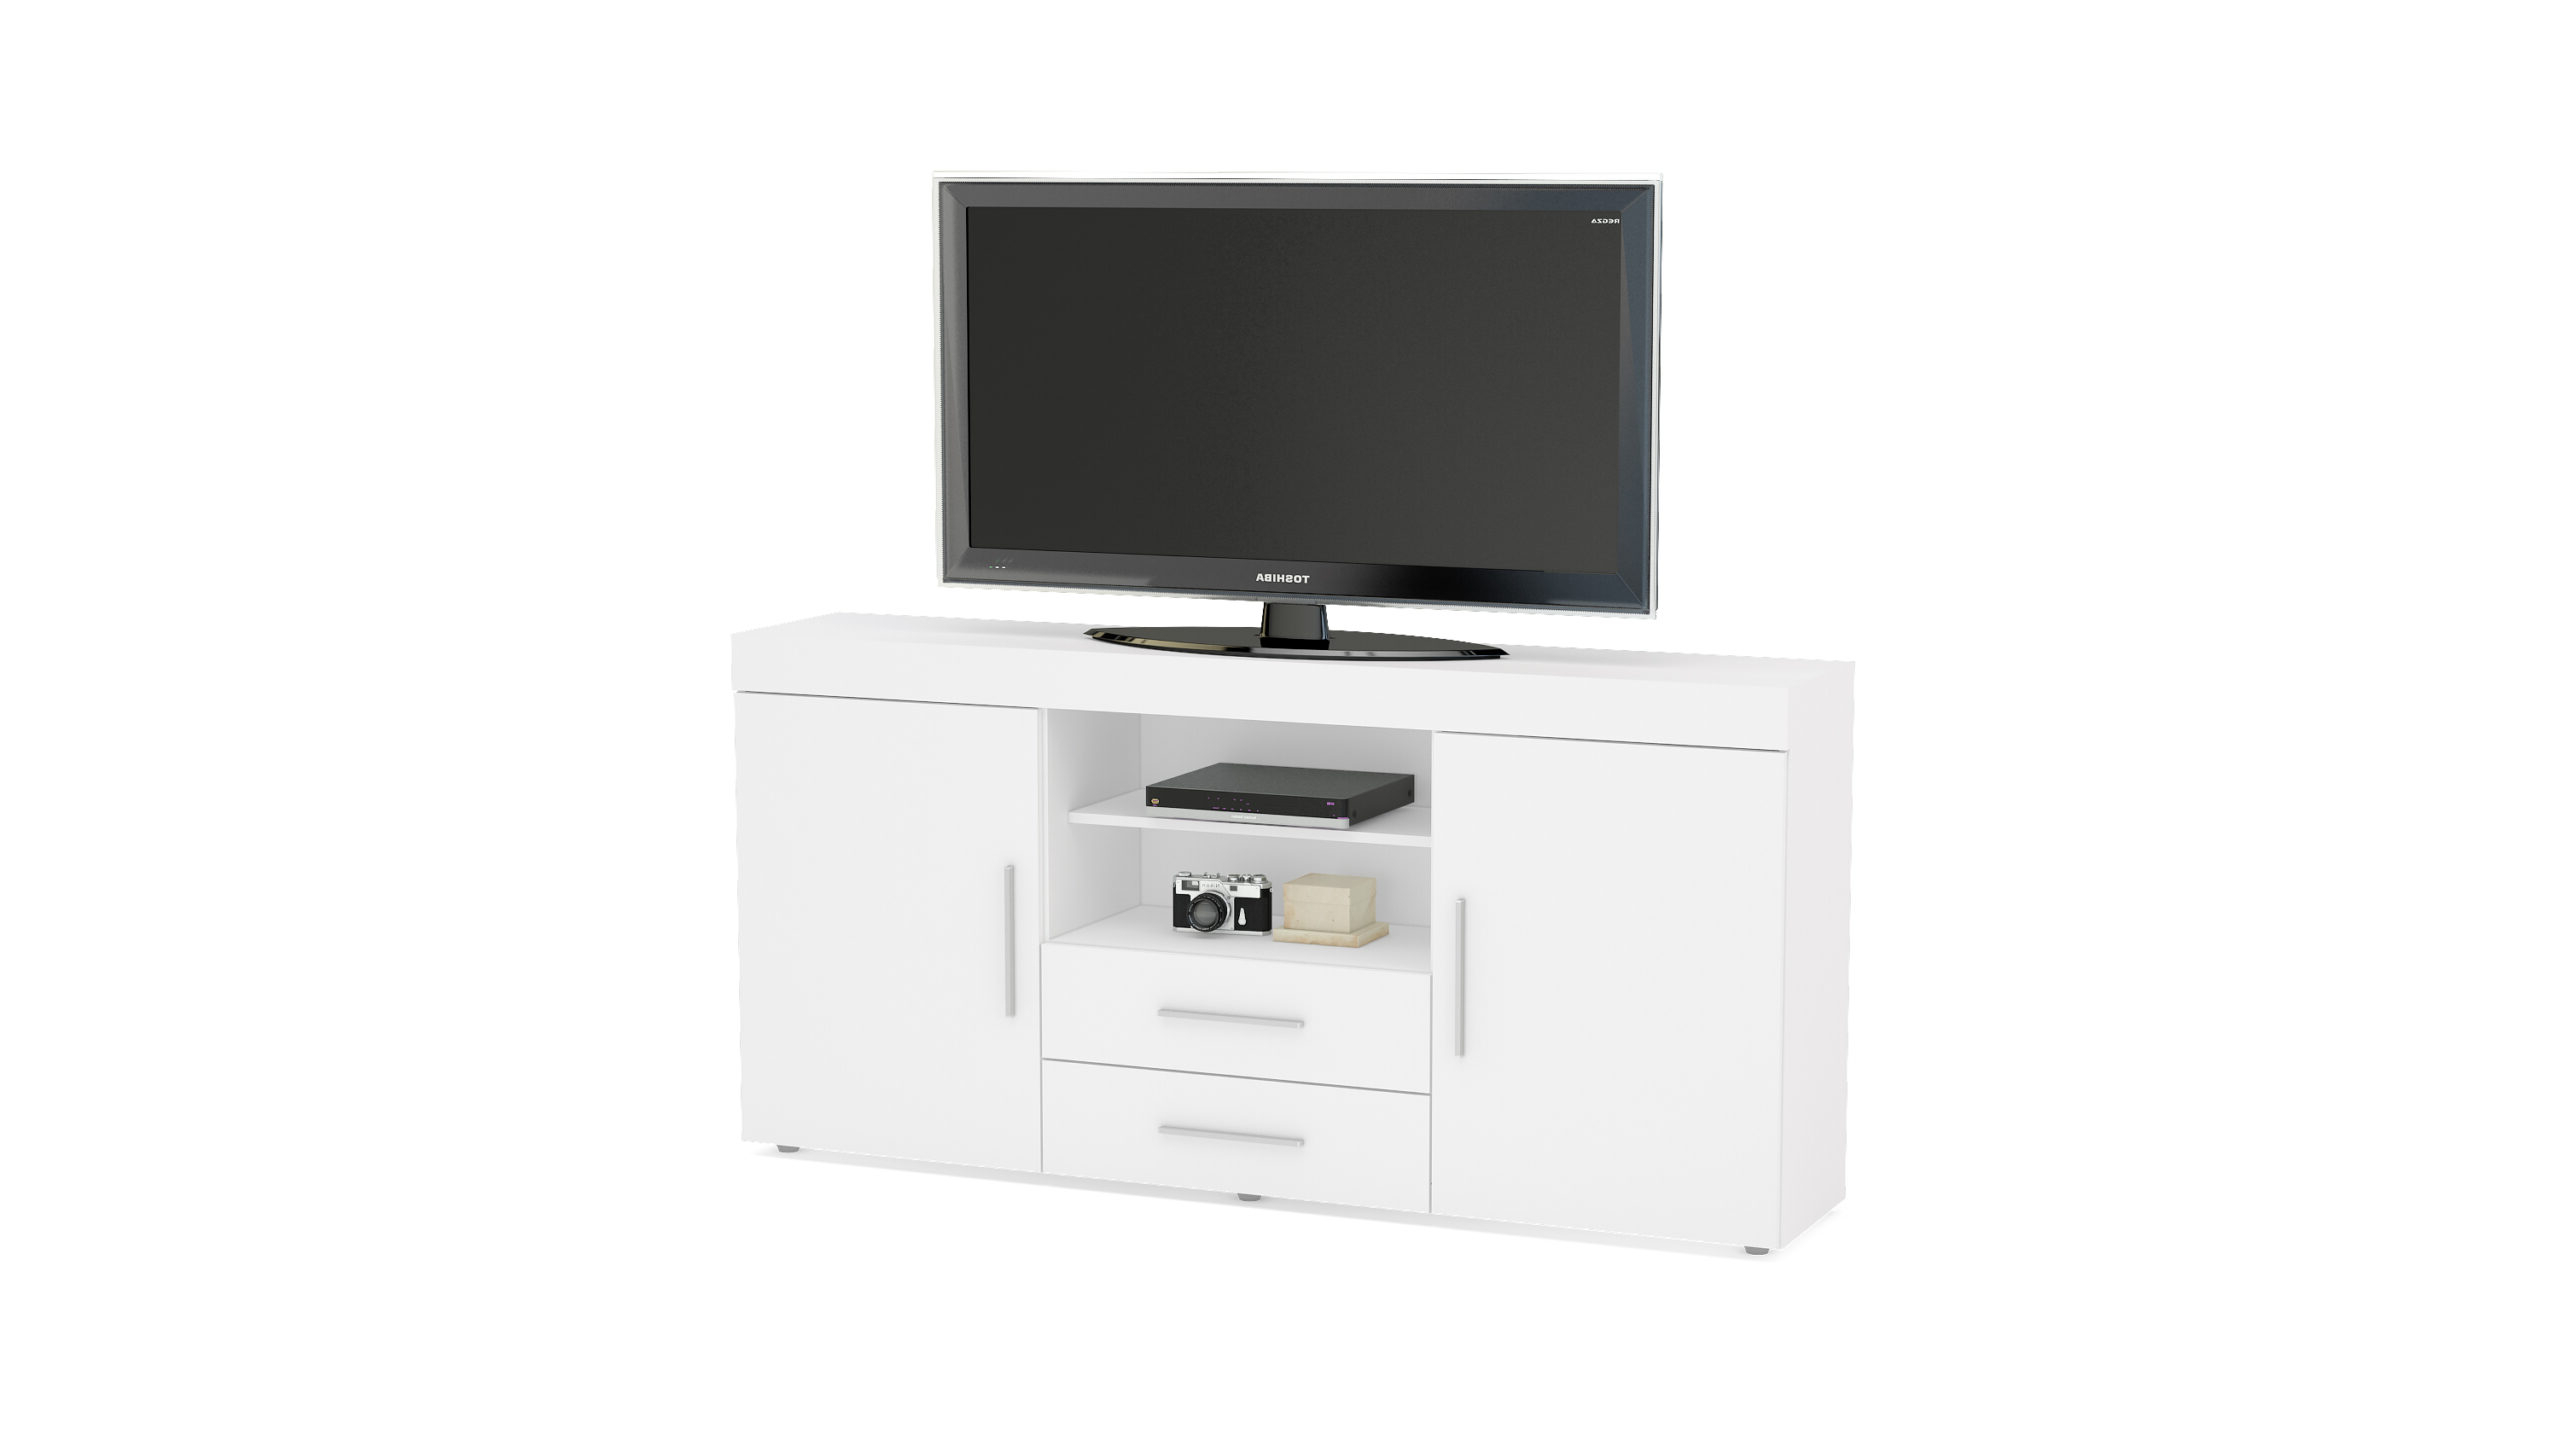 Most Recently Released Edgeware 2 Door 2 Drawer Sideboard White – Niture Uk With Regard To Edgeware Tv Stands (View 25 of 25)